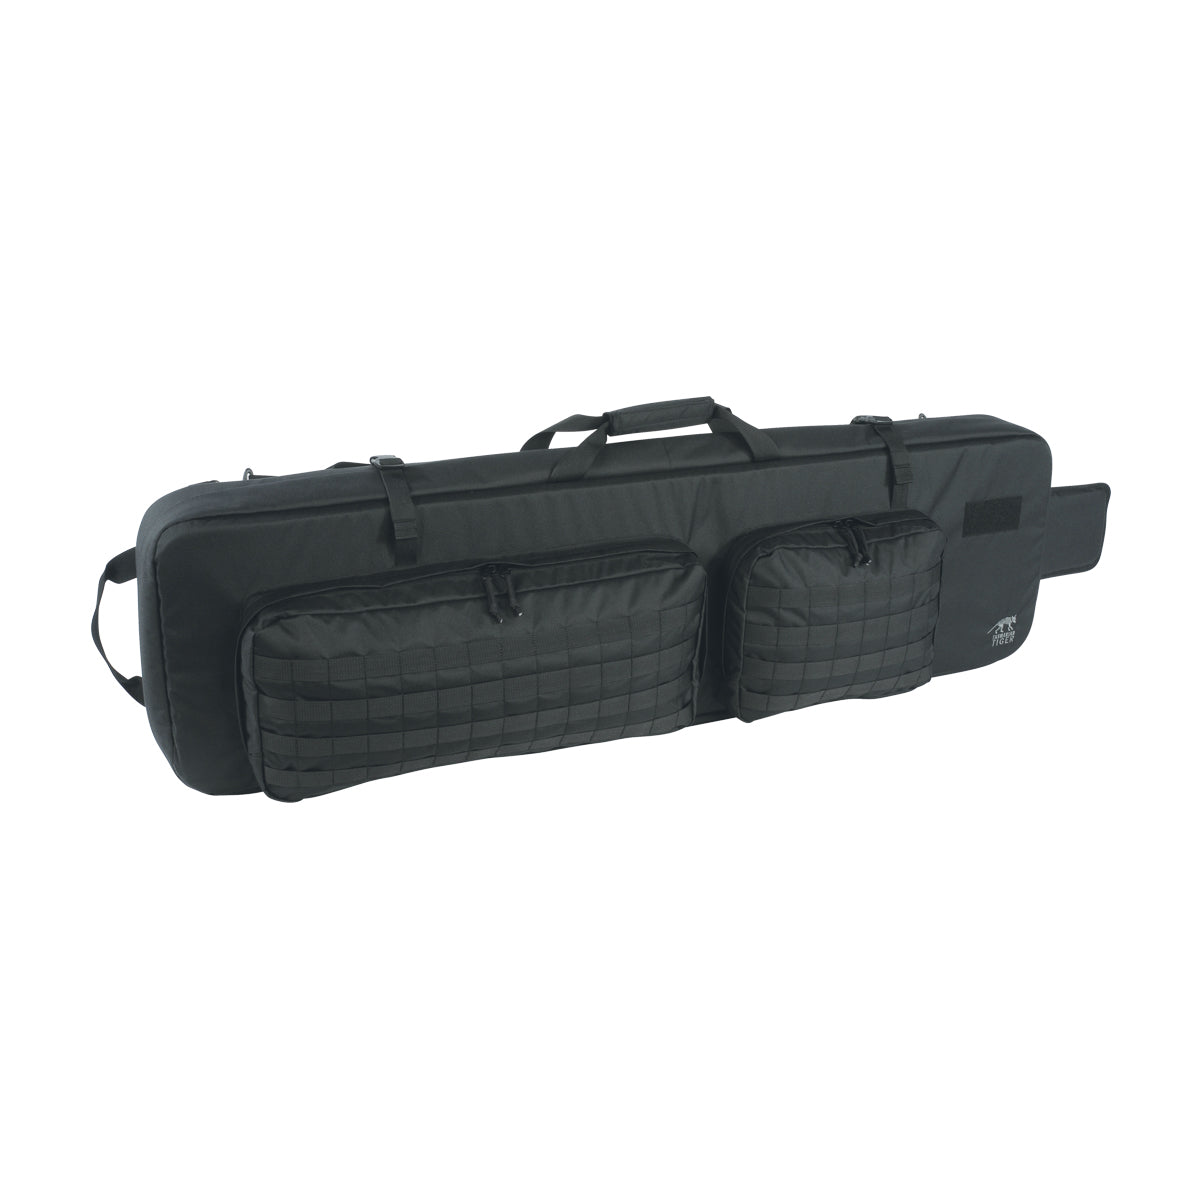 Tasmanian Tiger DBL Modular Rifle Bag